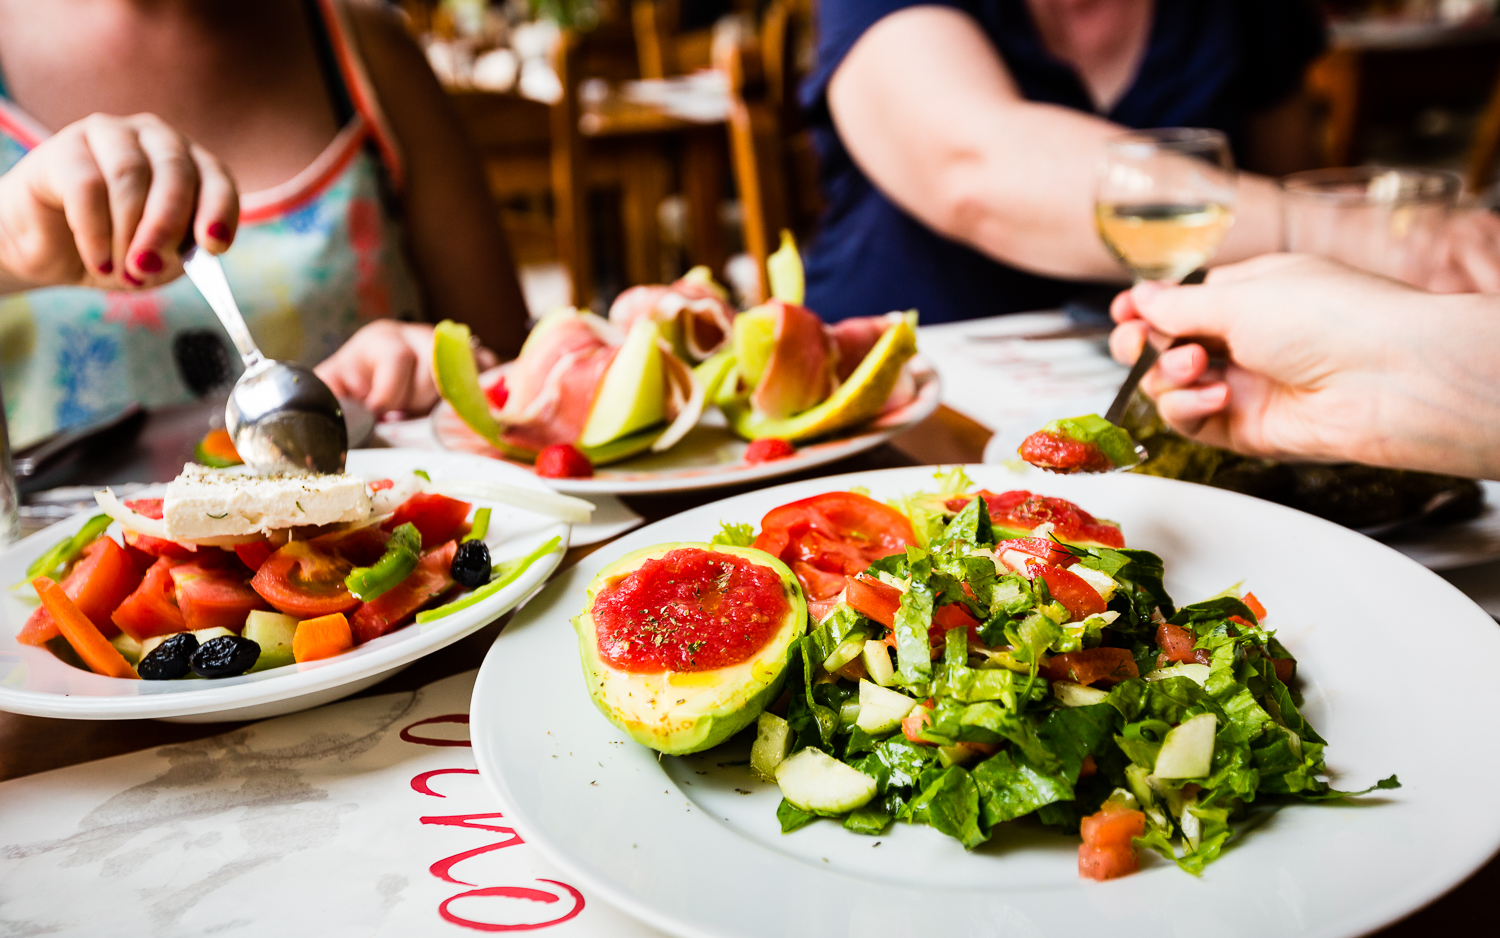 adventure-travel-photography-becky-brockie-greece-typical-meal.jpg